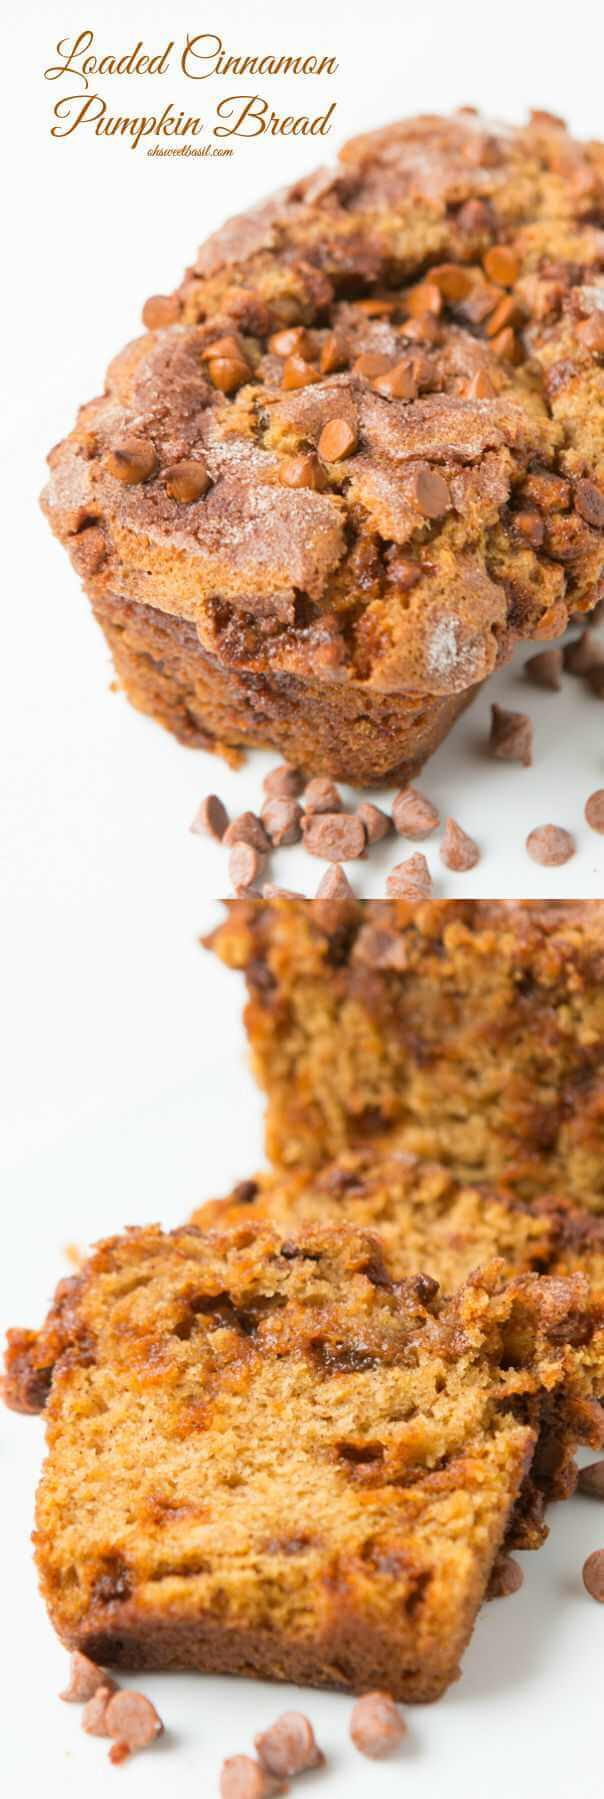 Loaded Cinnamon Chip Pumpkin Bread, your new holiday favorite! ohsweetbasil.com